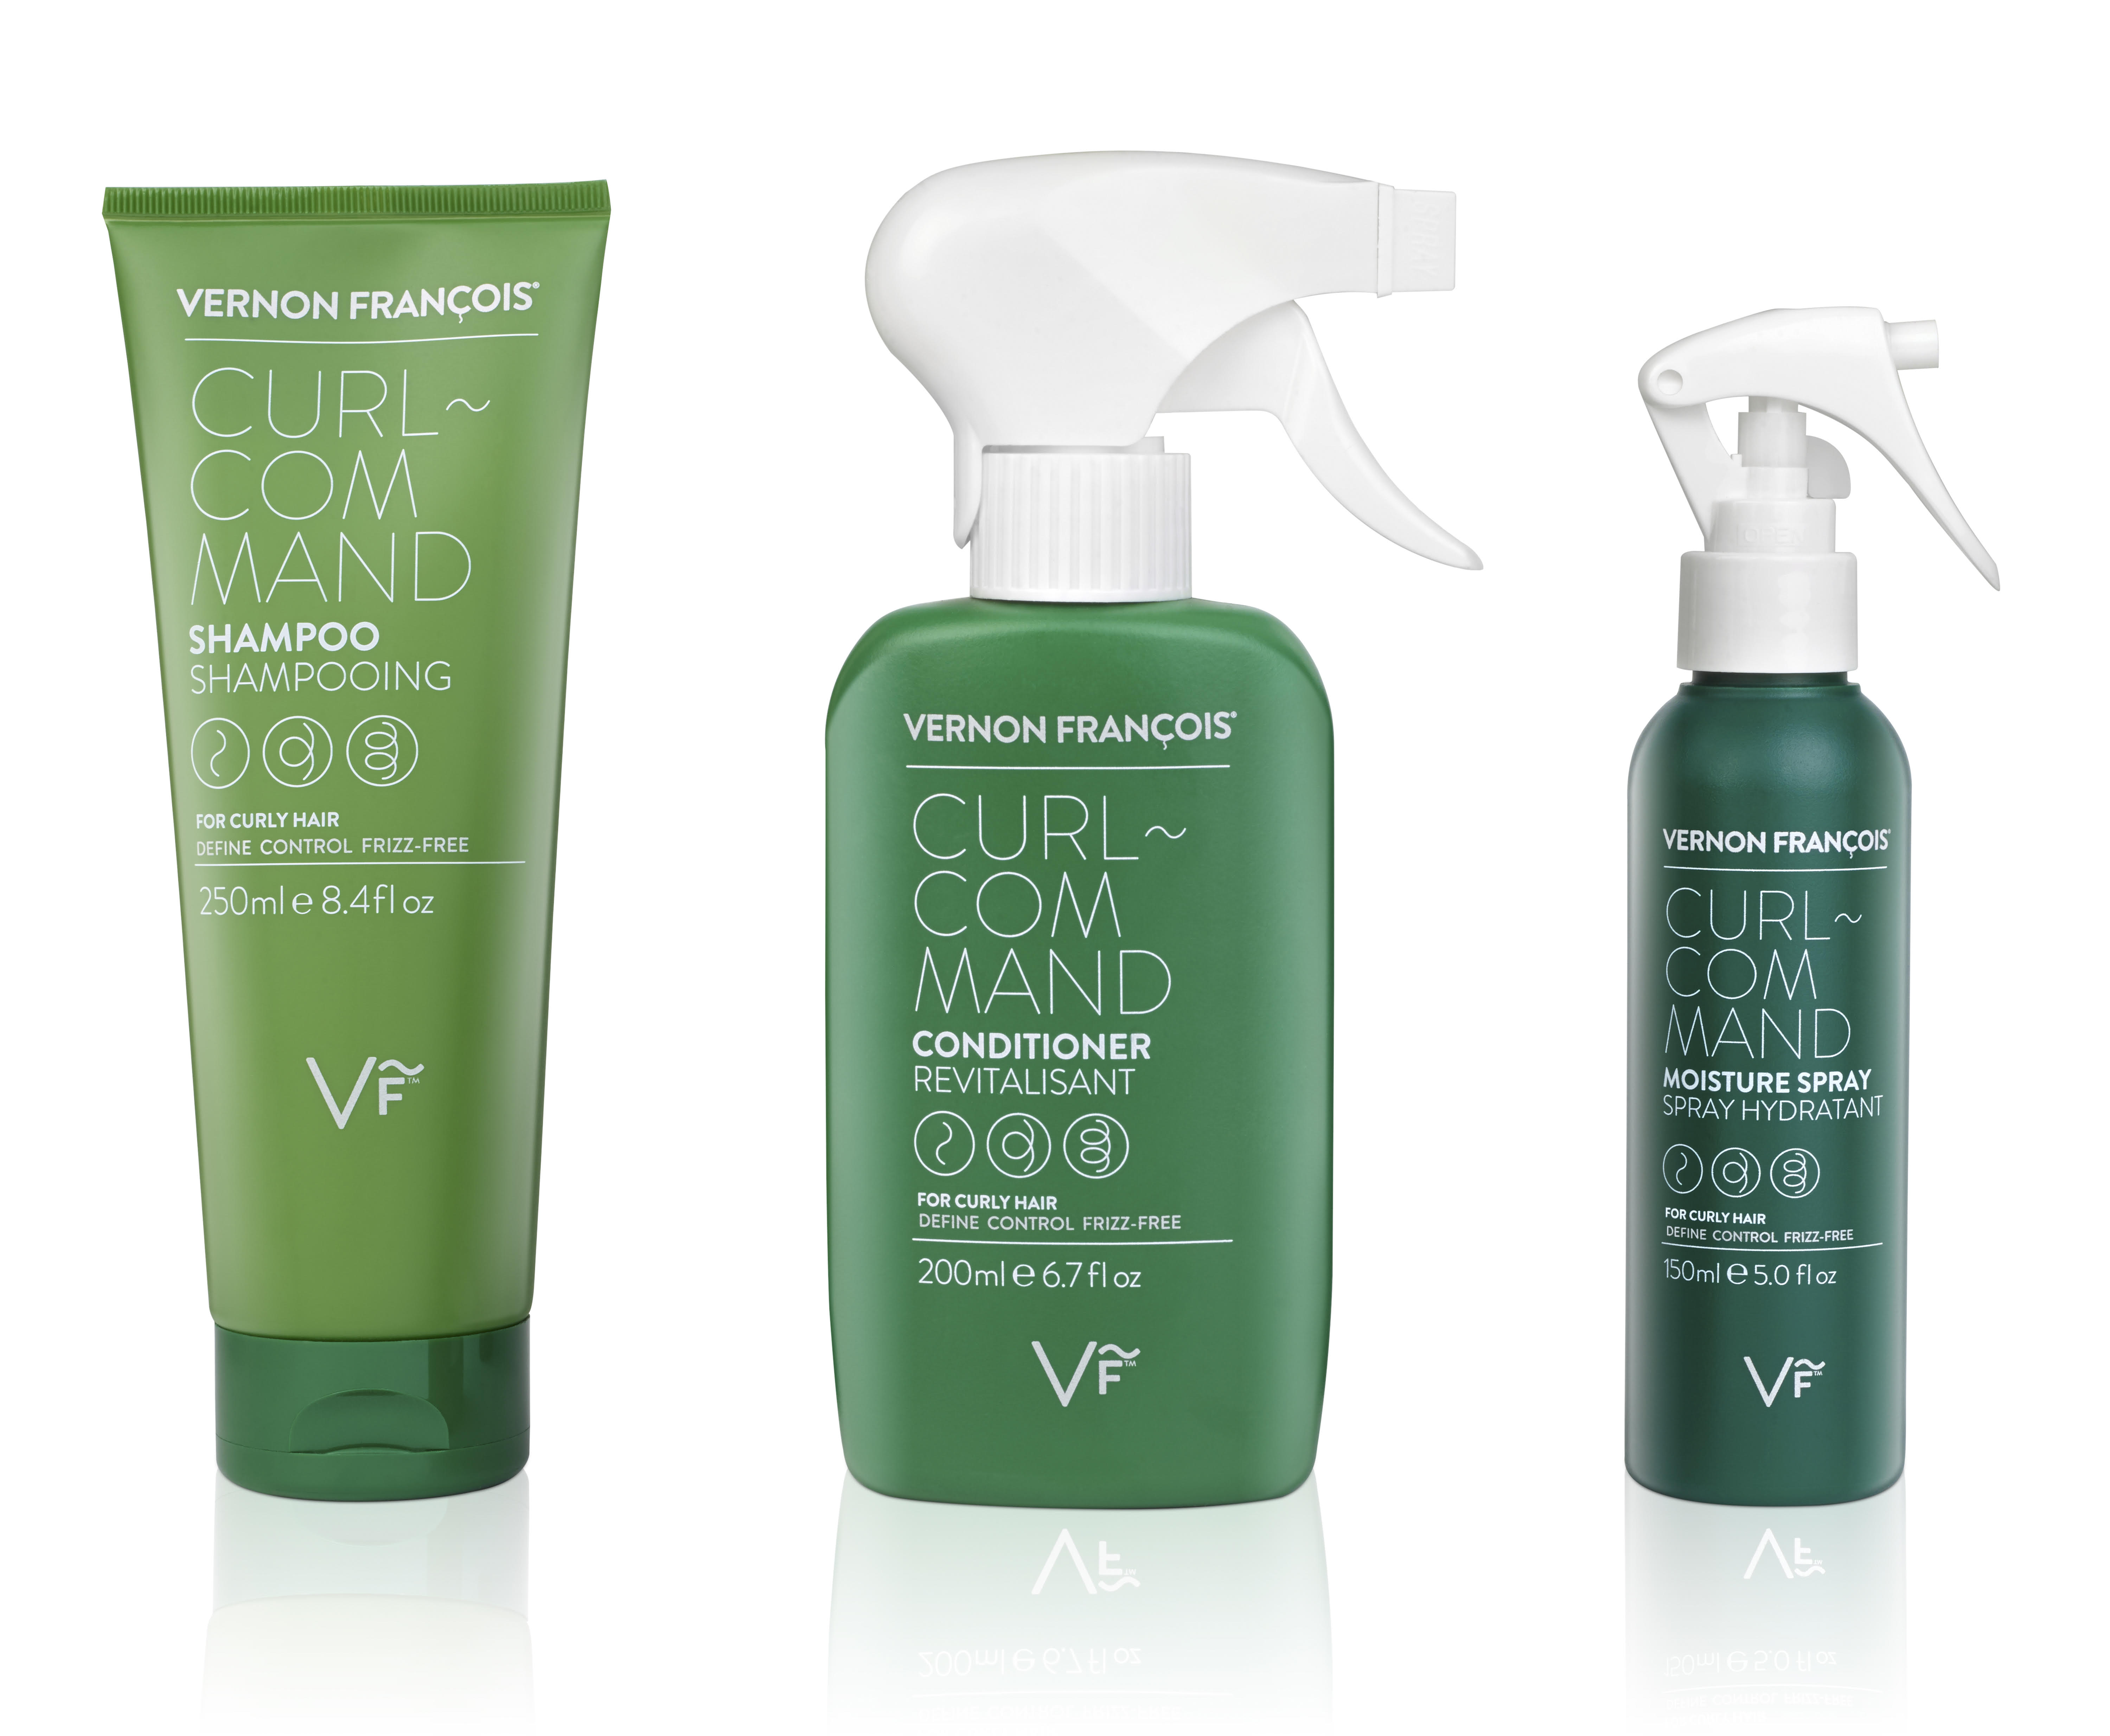 Products from Vernon Francois' new line of products for textured hair.